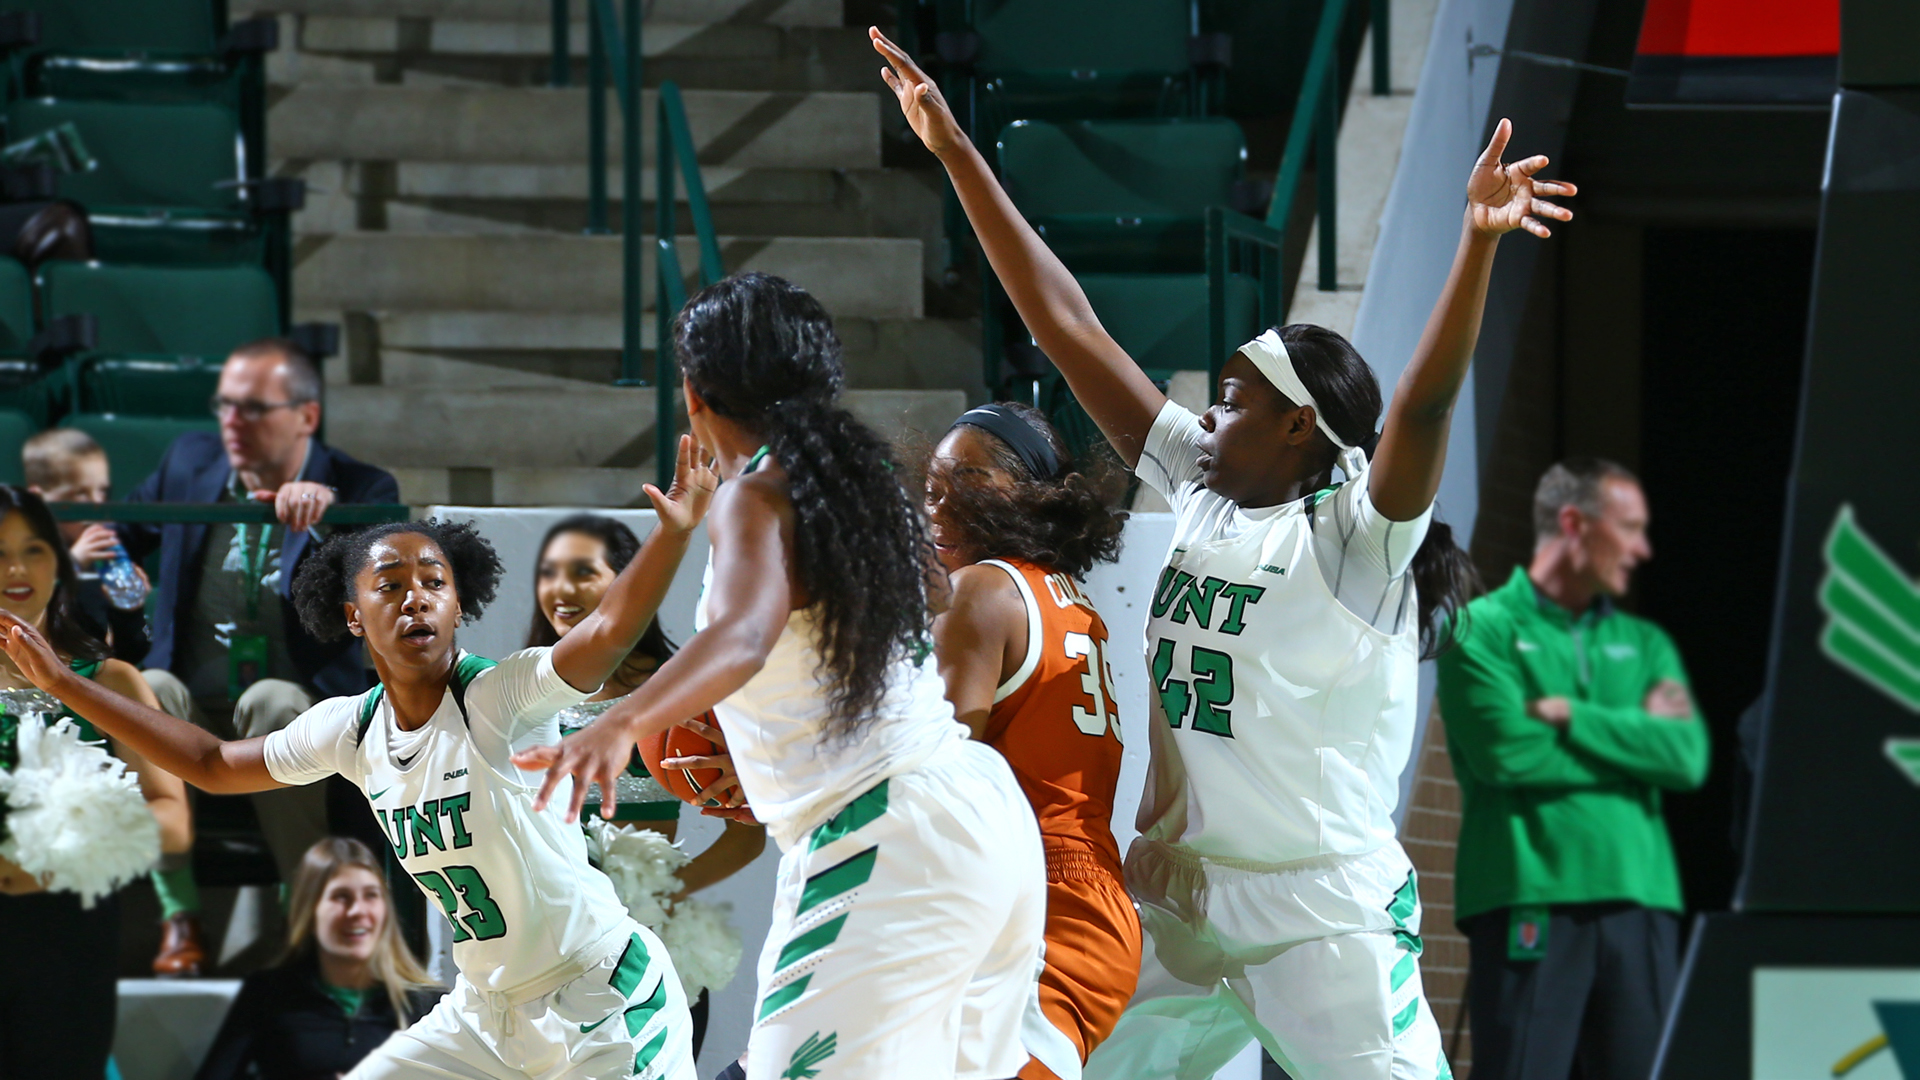 North Texas WBB: Highlights at USM 1/5/19